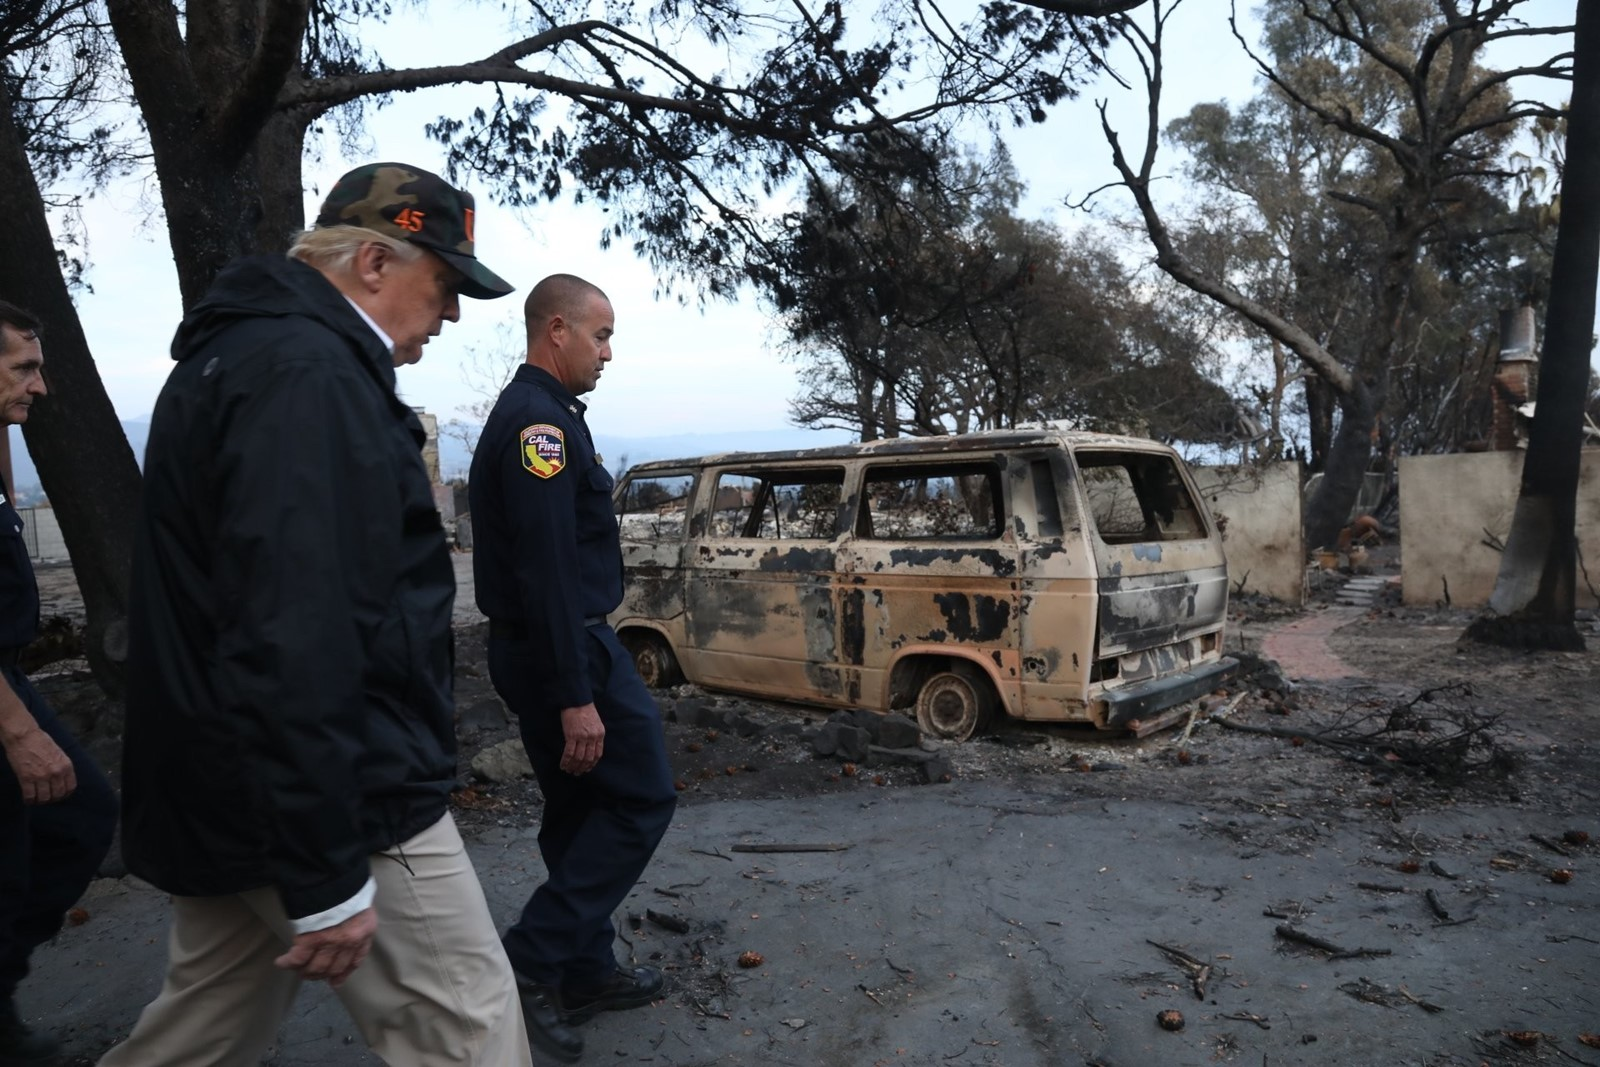 President Donald J. Trump in his second visit to California since his election, walks through a Malibu neighborhood on Saturday to assess wildfire damage. — Photograph: Genaro Molina/Los Angeles Times.